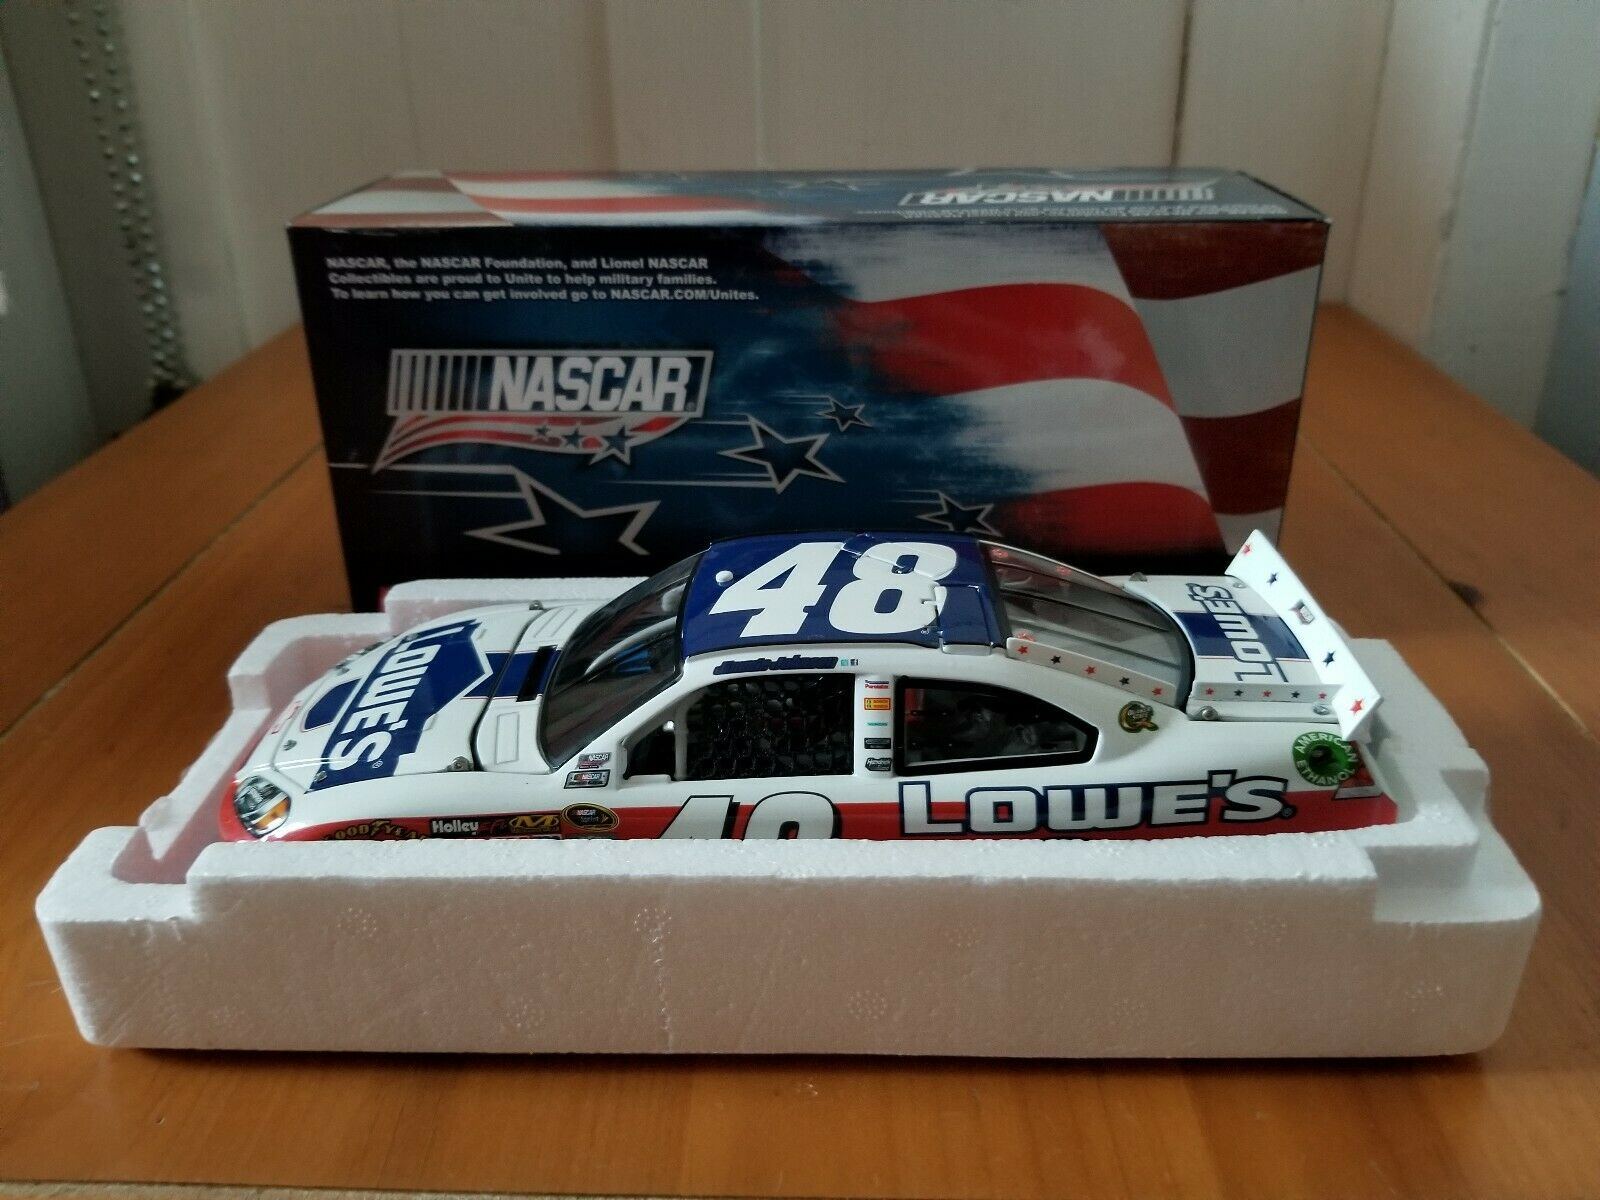 2012 Jimmie Johnson Lowes NASCAR Unites 1 24 CWC Lowe's